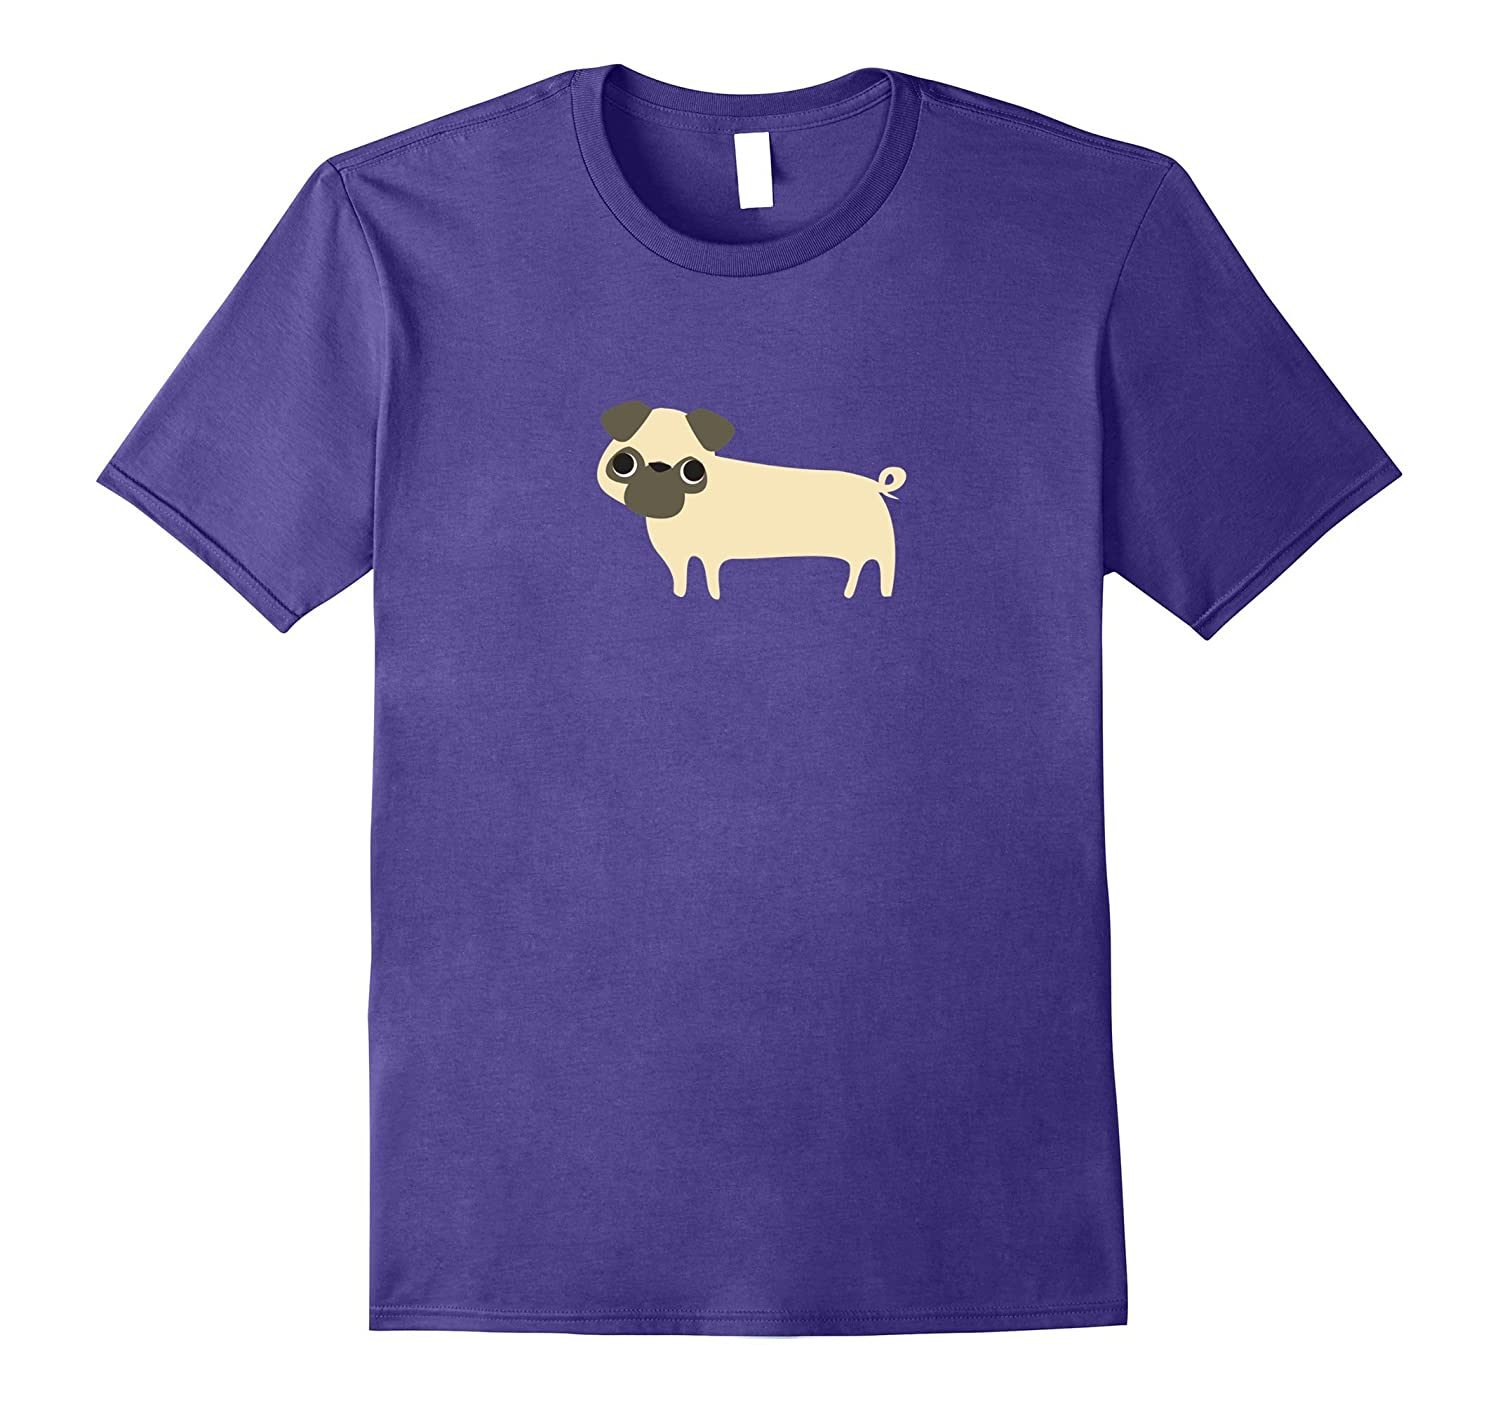 Pug Shirt, Simple Cute Dog Lover Graphic Unique Trendy Gift-T-Shirt